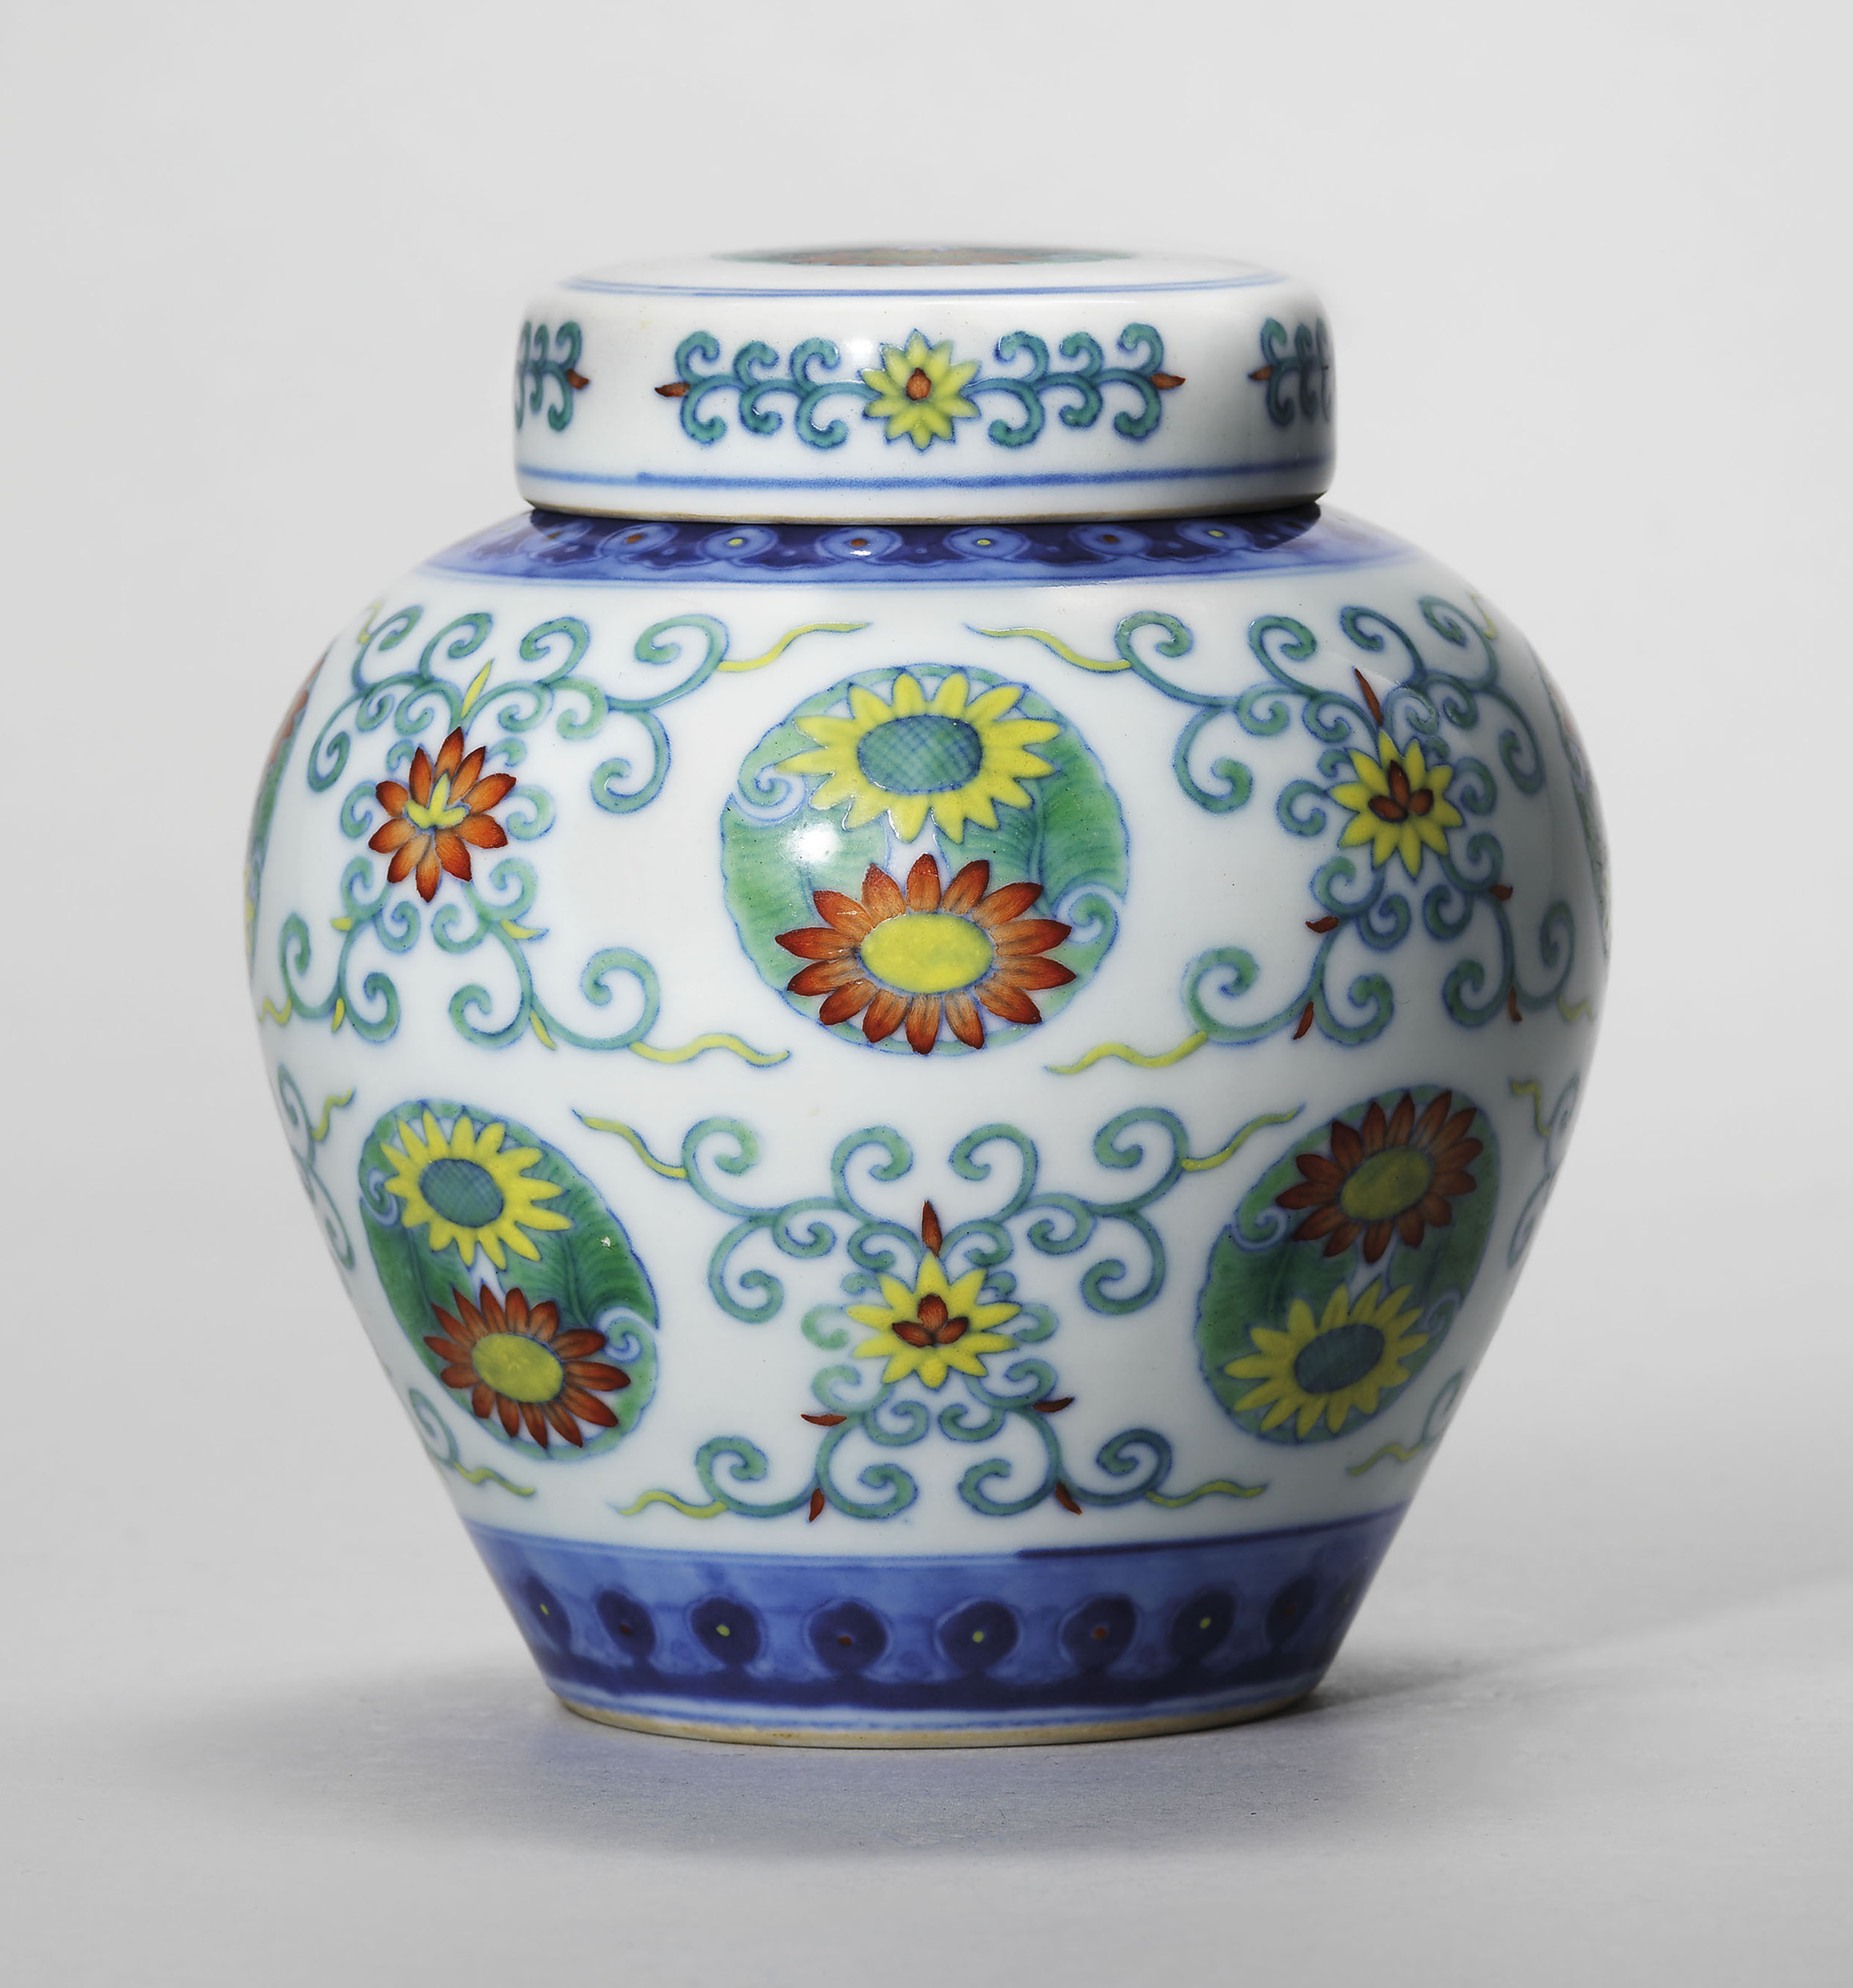 ming vase markings of a guide to the symbolism of flowers on chinese ceramics christies intended for a doucai chrysanthemum jar and cover qianlong six character seal mark in underglaze blue